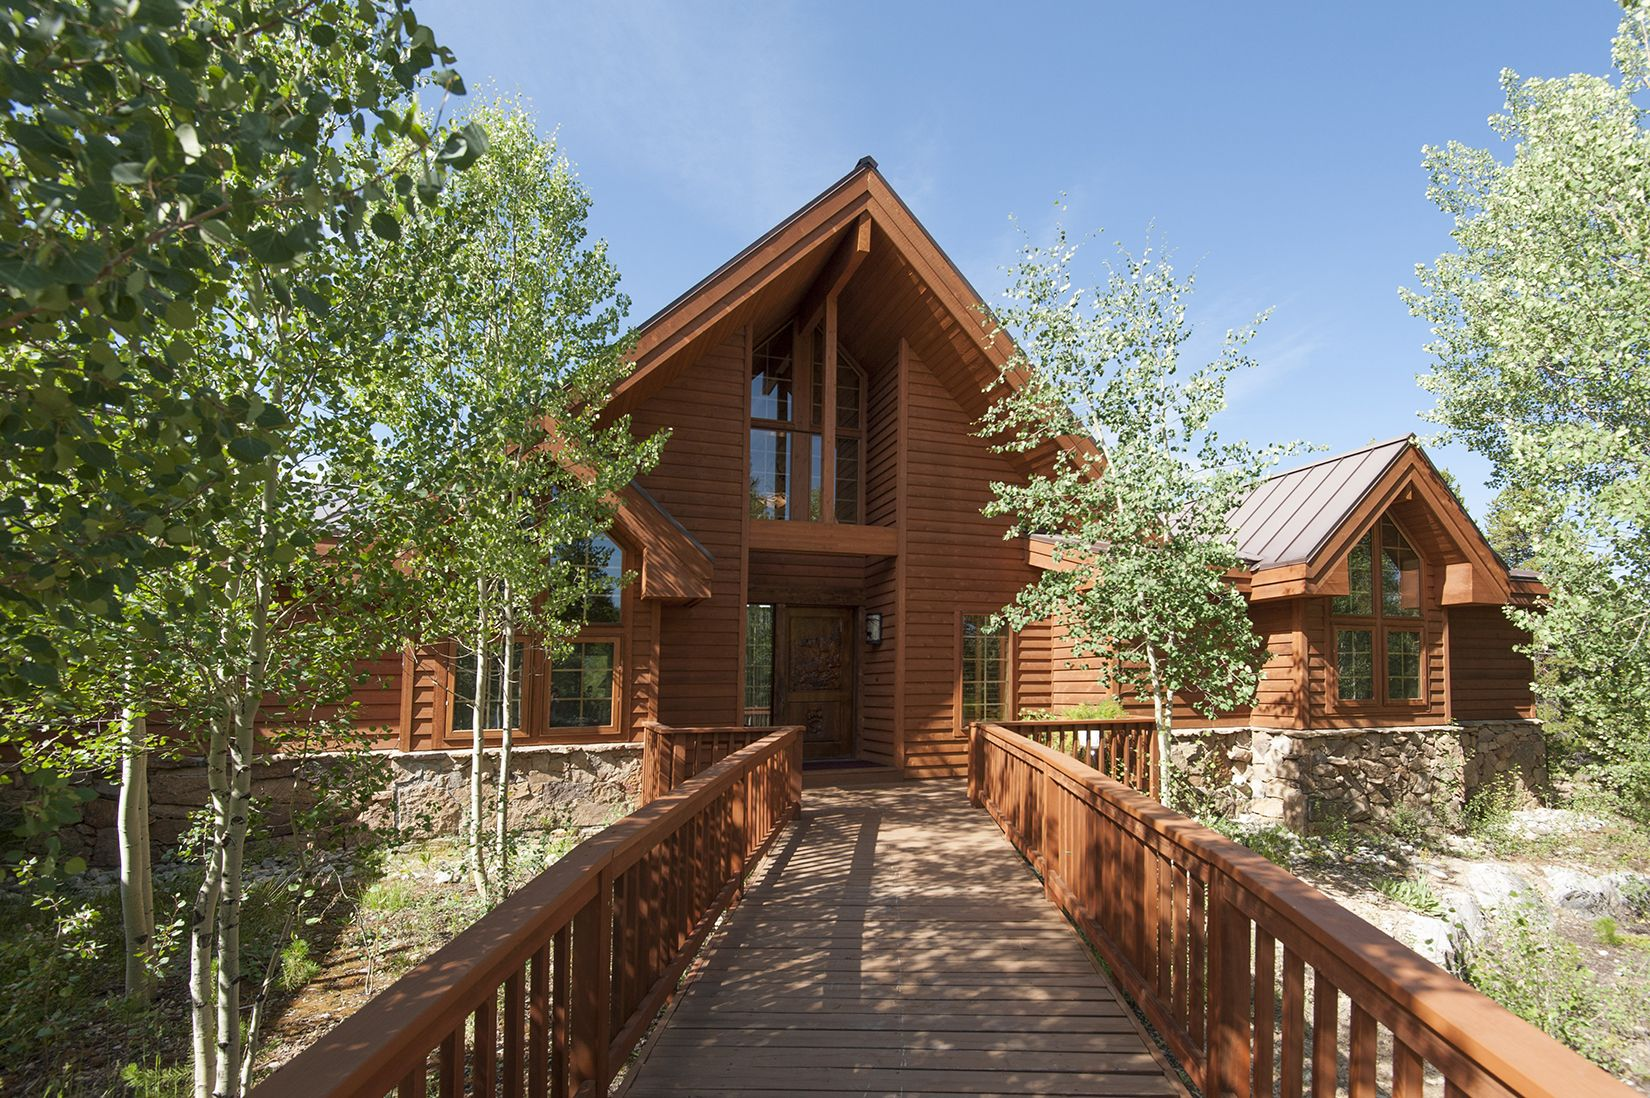 7 S RODEO DRIVE S LEADVILLE, Colorado 80461